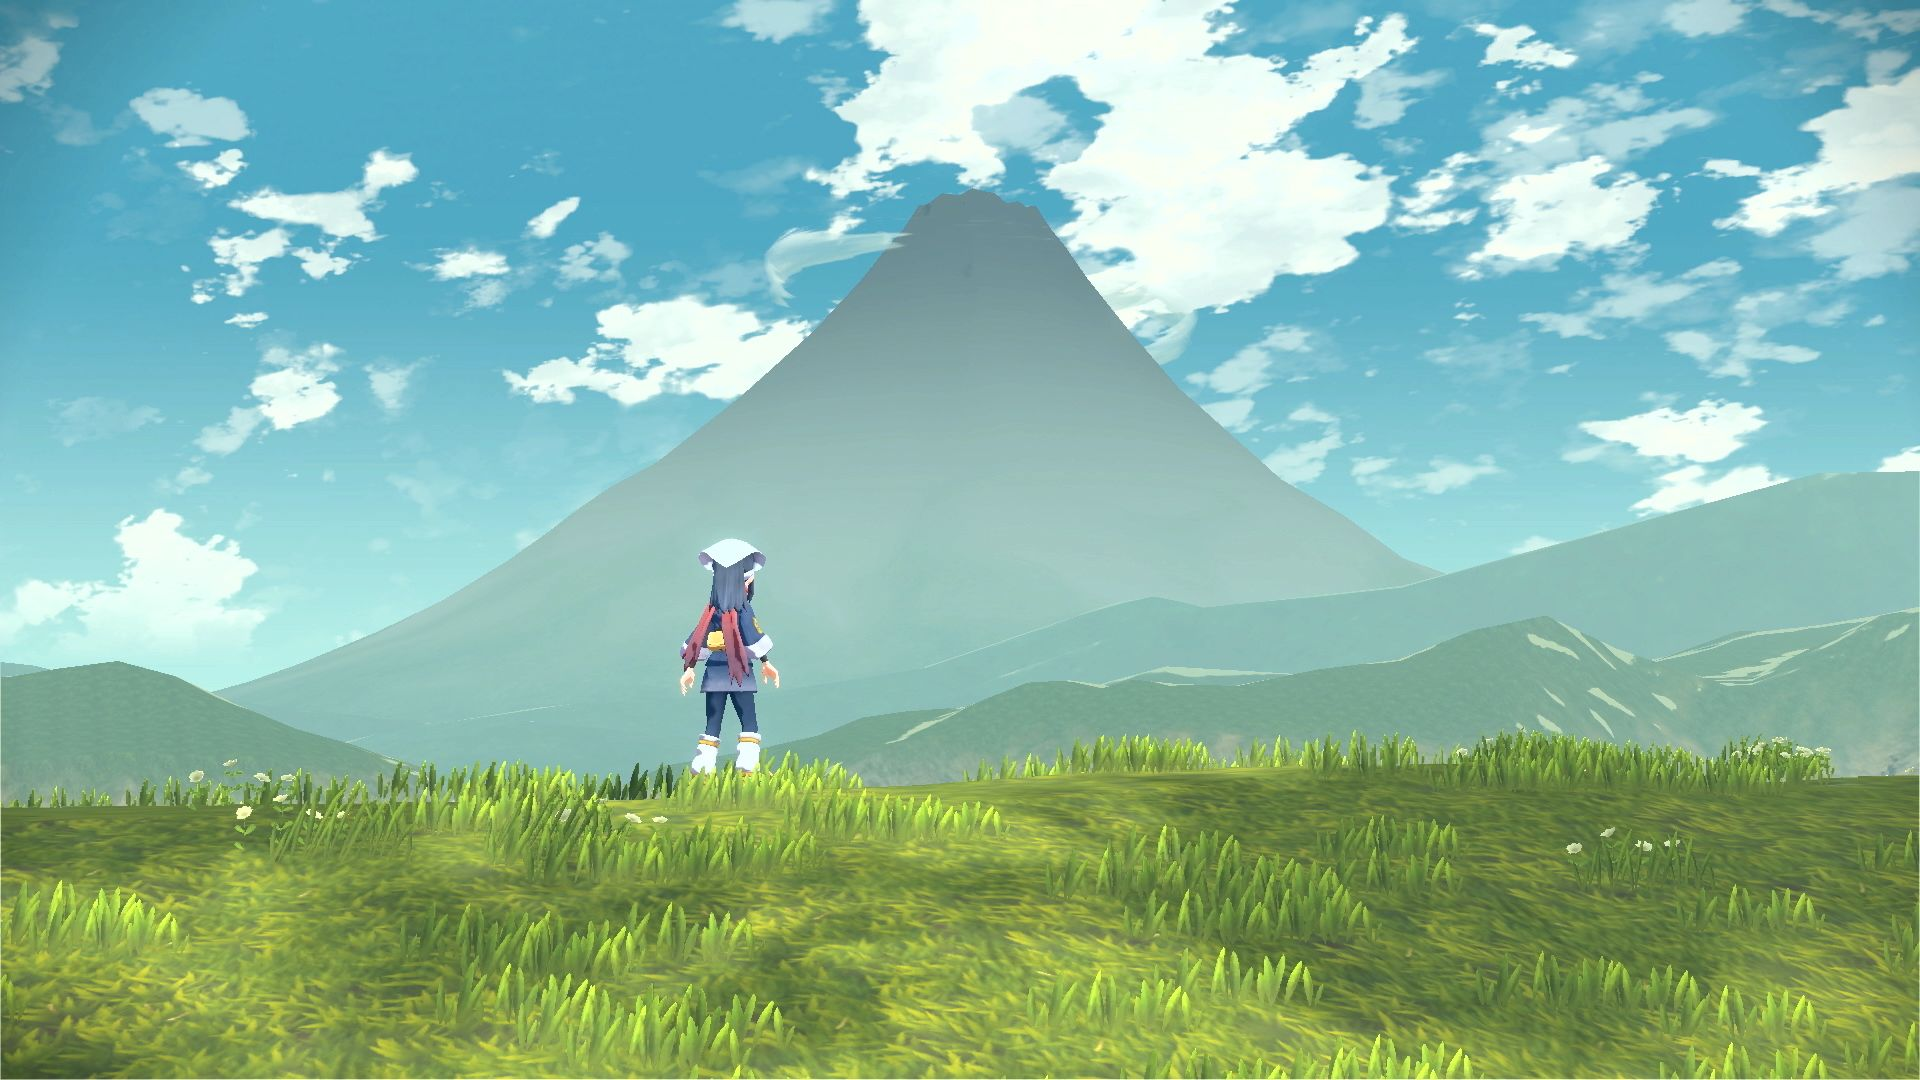 The player gazes upon a distant mountain in Pokemon Legends Arceus.